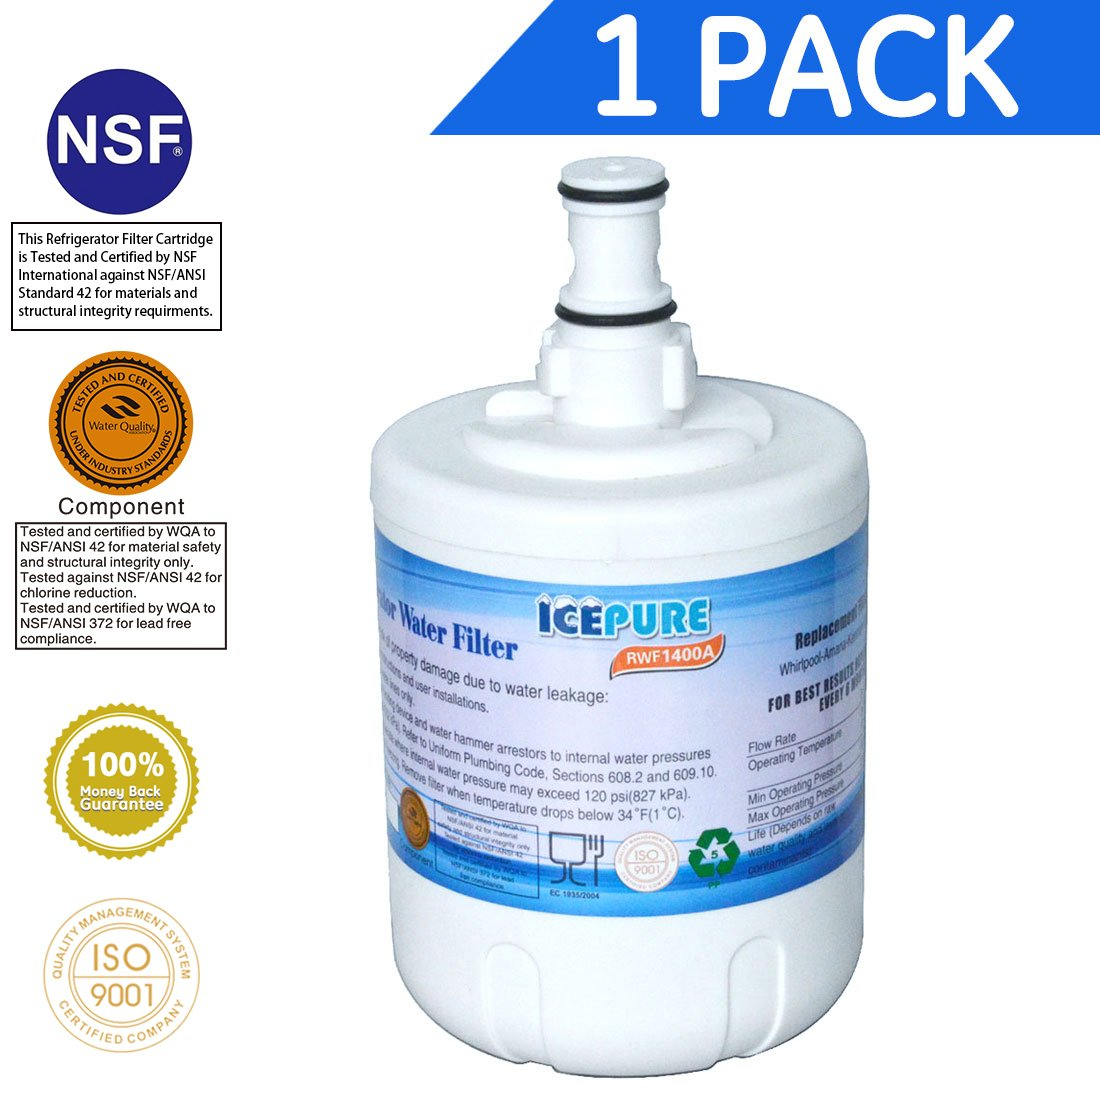 Icepure RWF1400A Refrigerator Water Filter Compatible with Whirlpool 8171413, 8171414 ,Filter 8, 1PACK